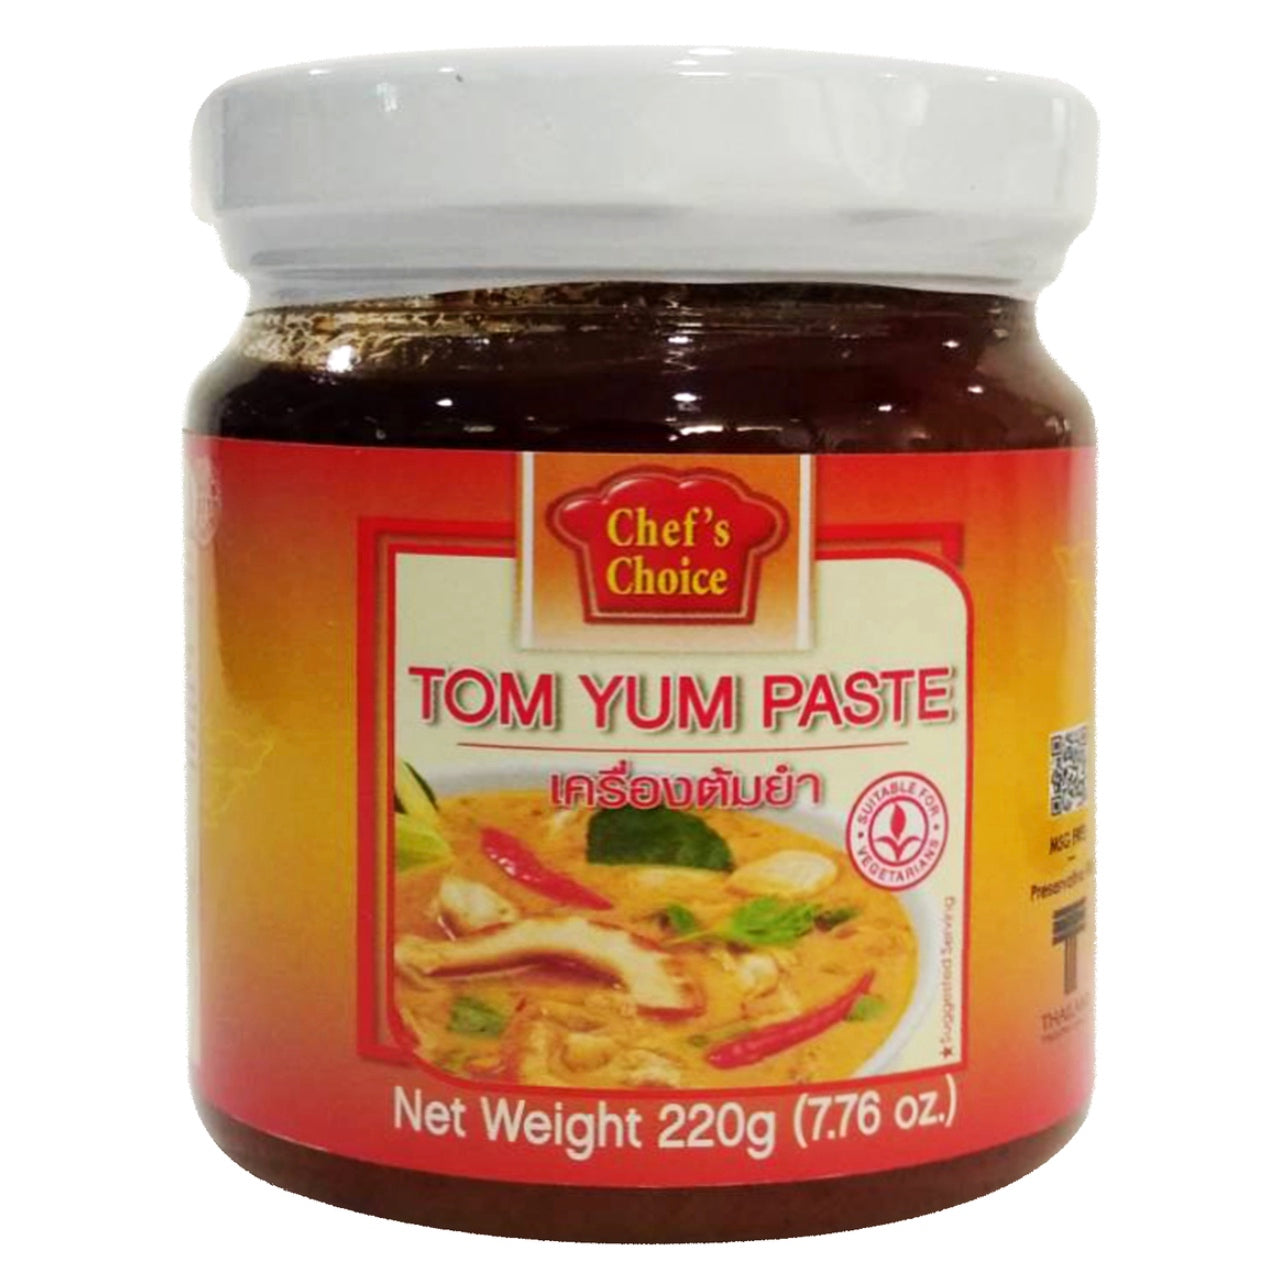 Chef's Choice Tom Yum Paste